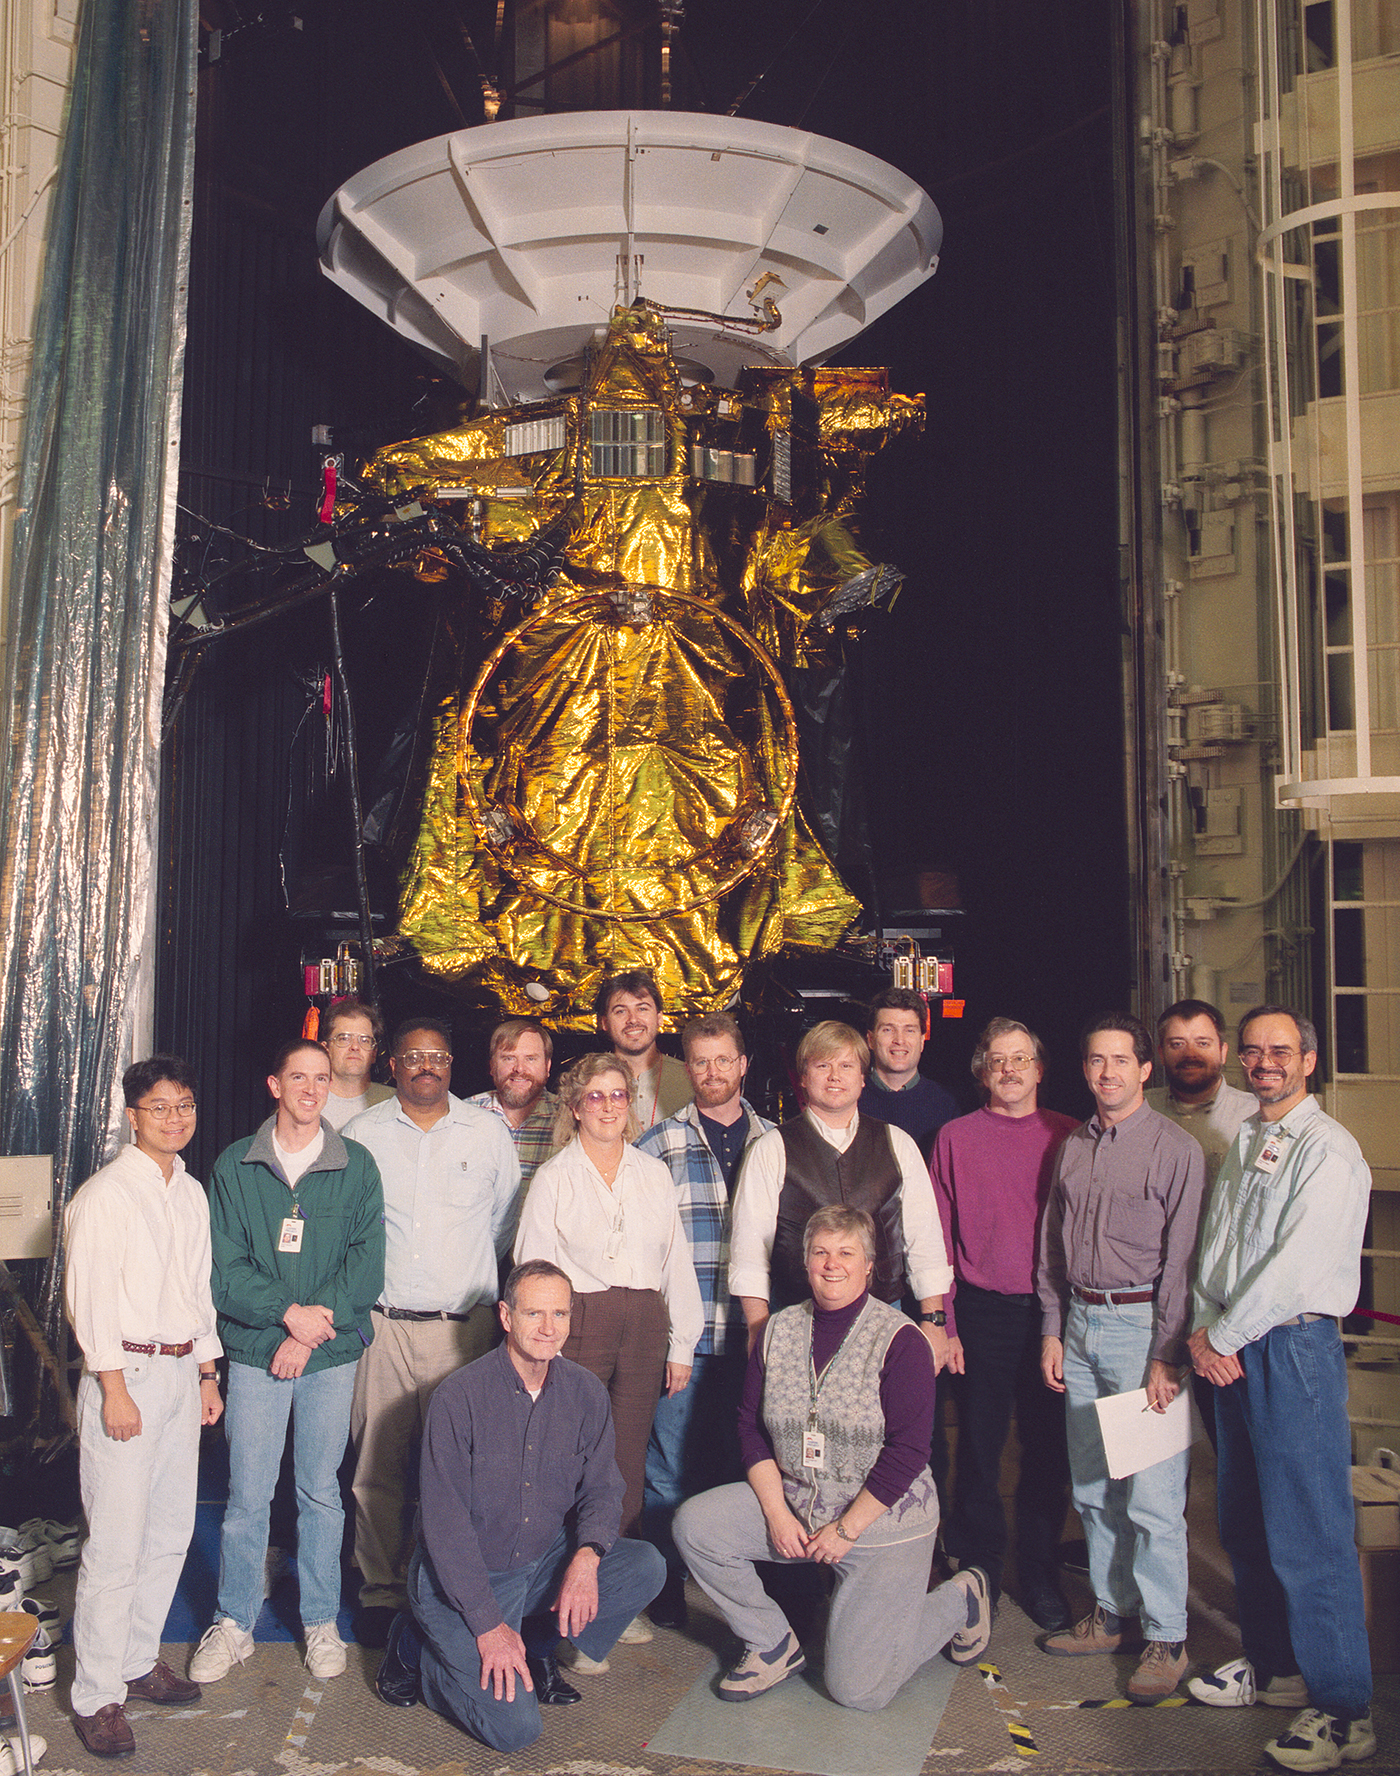 Group of people in front of spacecraft.